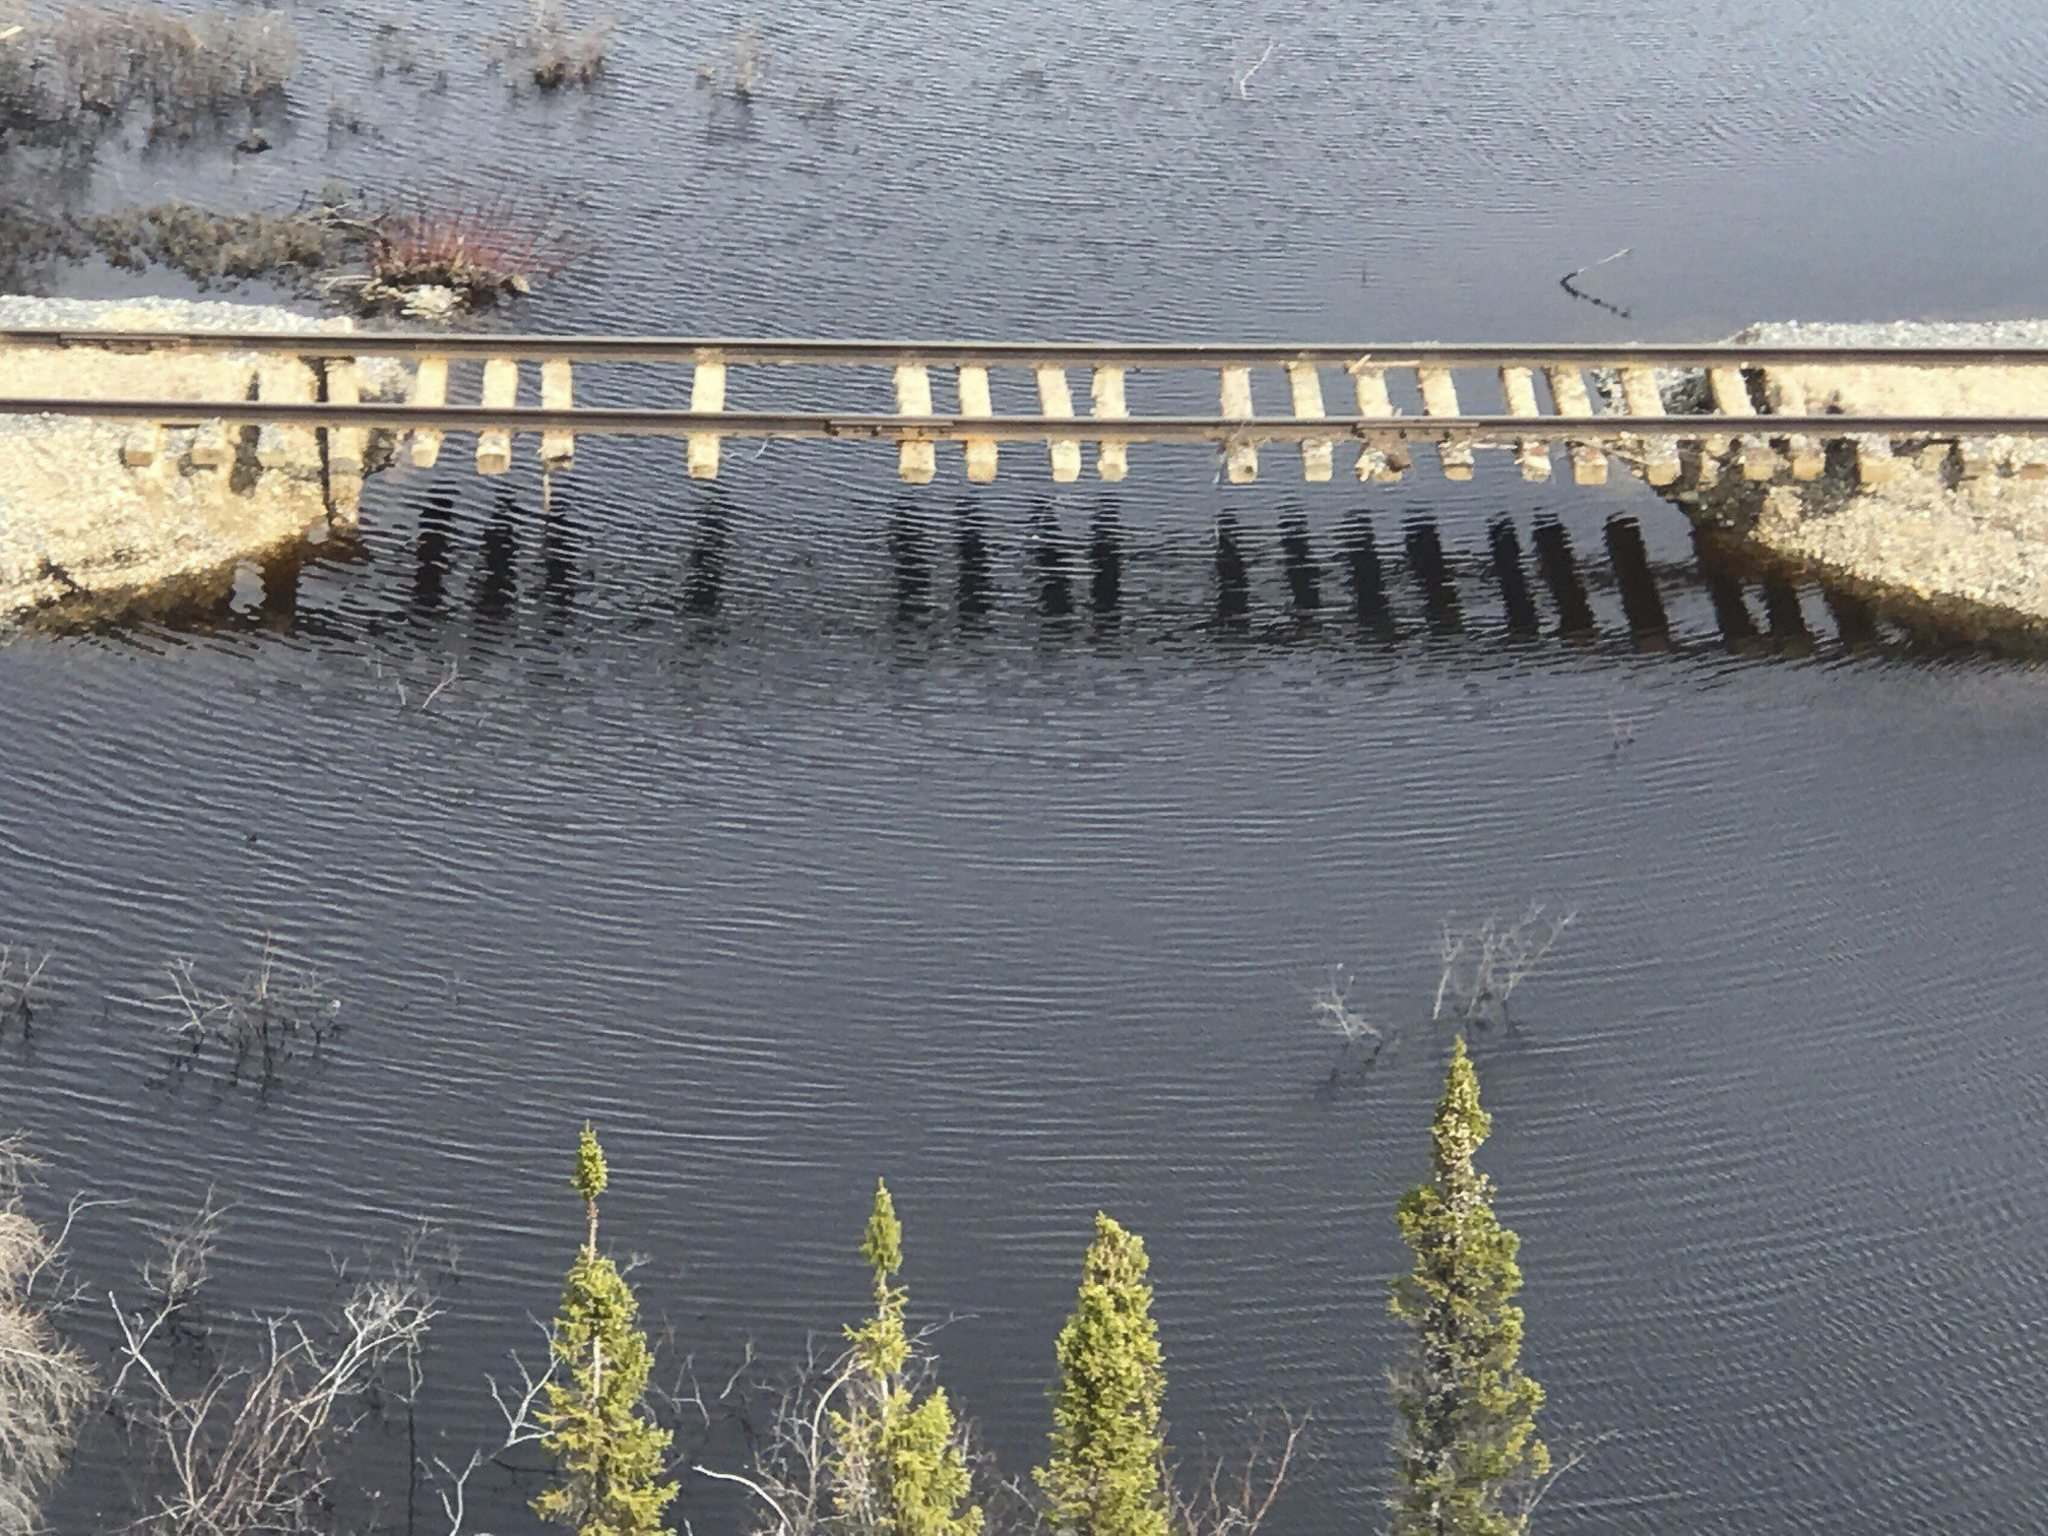 HANDOUT / OMNITRAX / THE CANADIAN PRESS FILES</p><p>The owners of the Hudson Bay Railway stopped service on May 23 and they say damage to the line will take months to repair.</p>